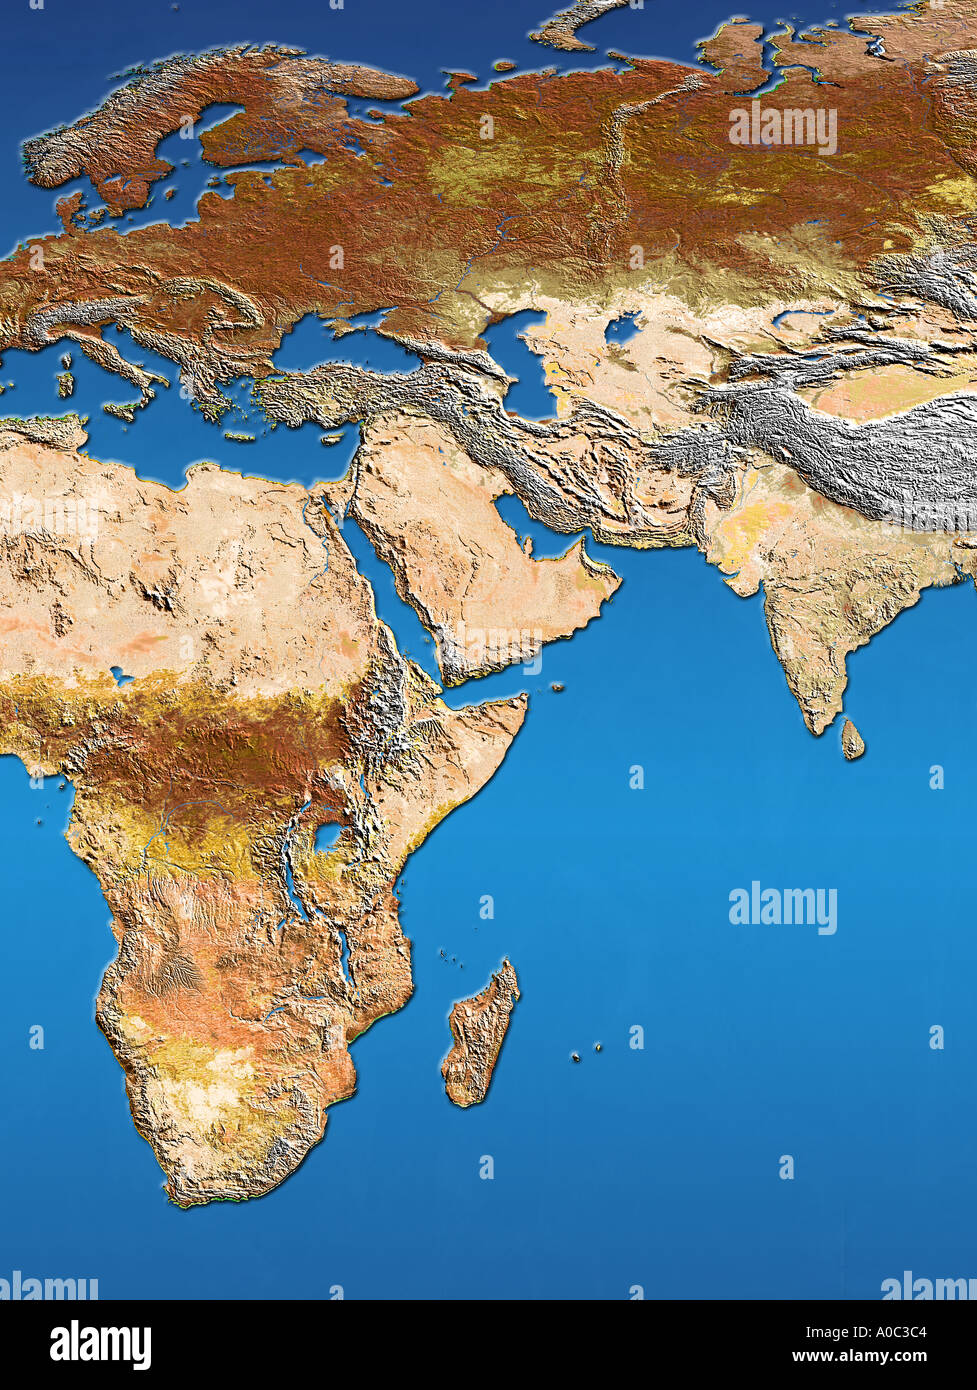 Satellite image map of Africa Arabia Europe Scandinavia India and ...